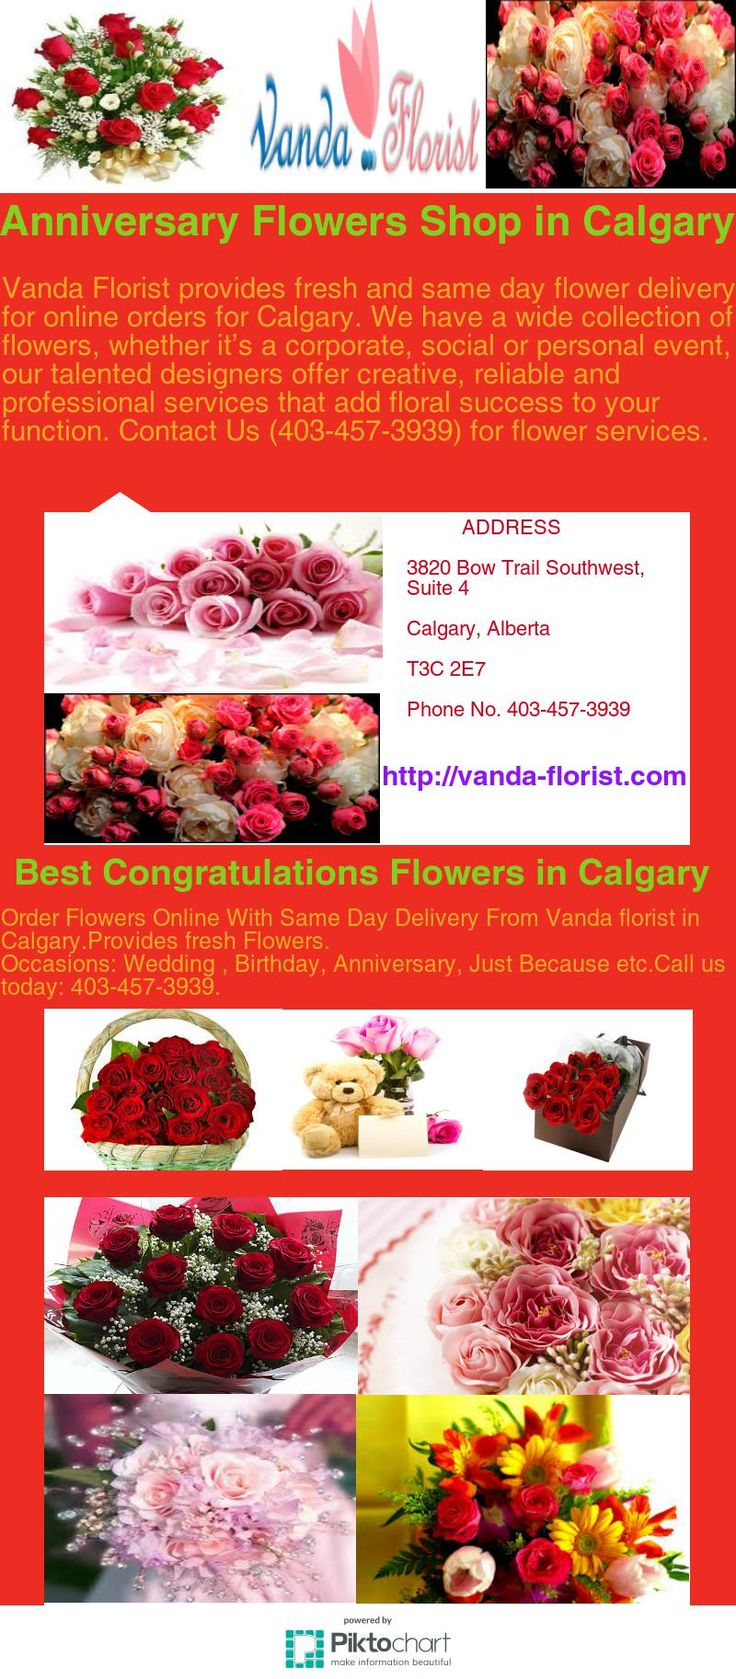 10 best christmas flower delivery shop in calgary images on order flowers online with same day flower delivery in calgary from vanda floristovides fresh flowers for occasions like wedding birthday izmirmasajfo